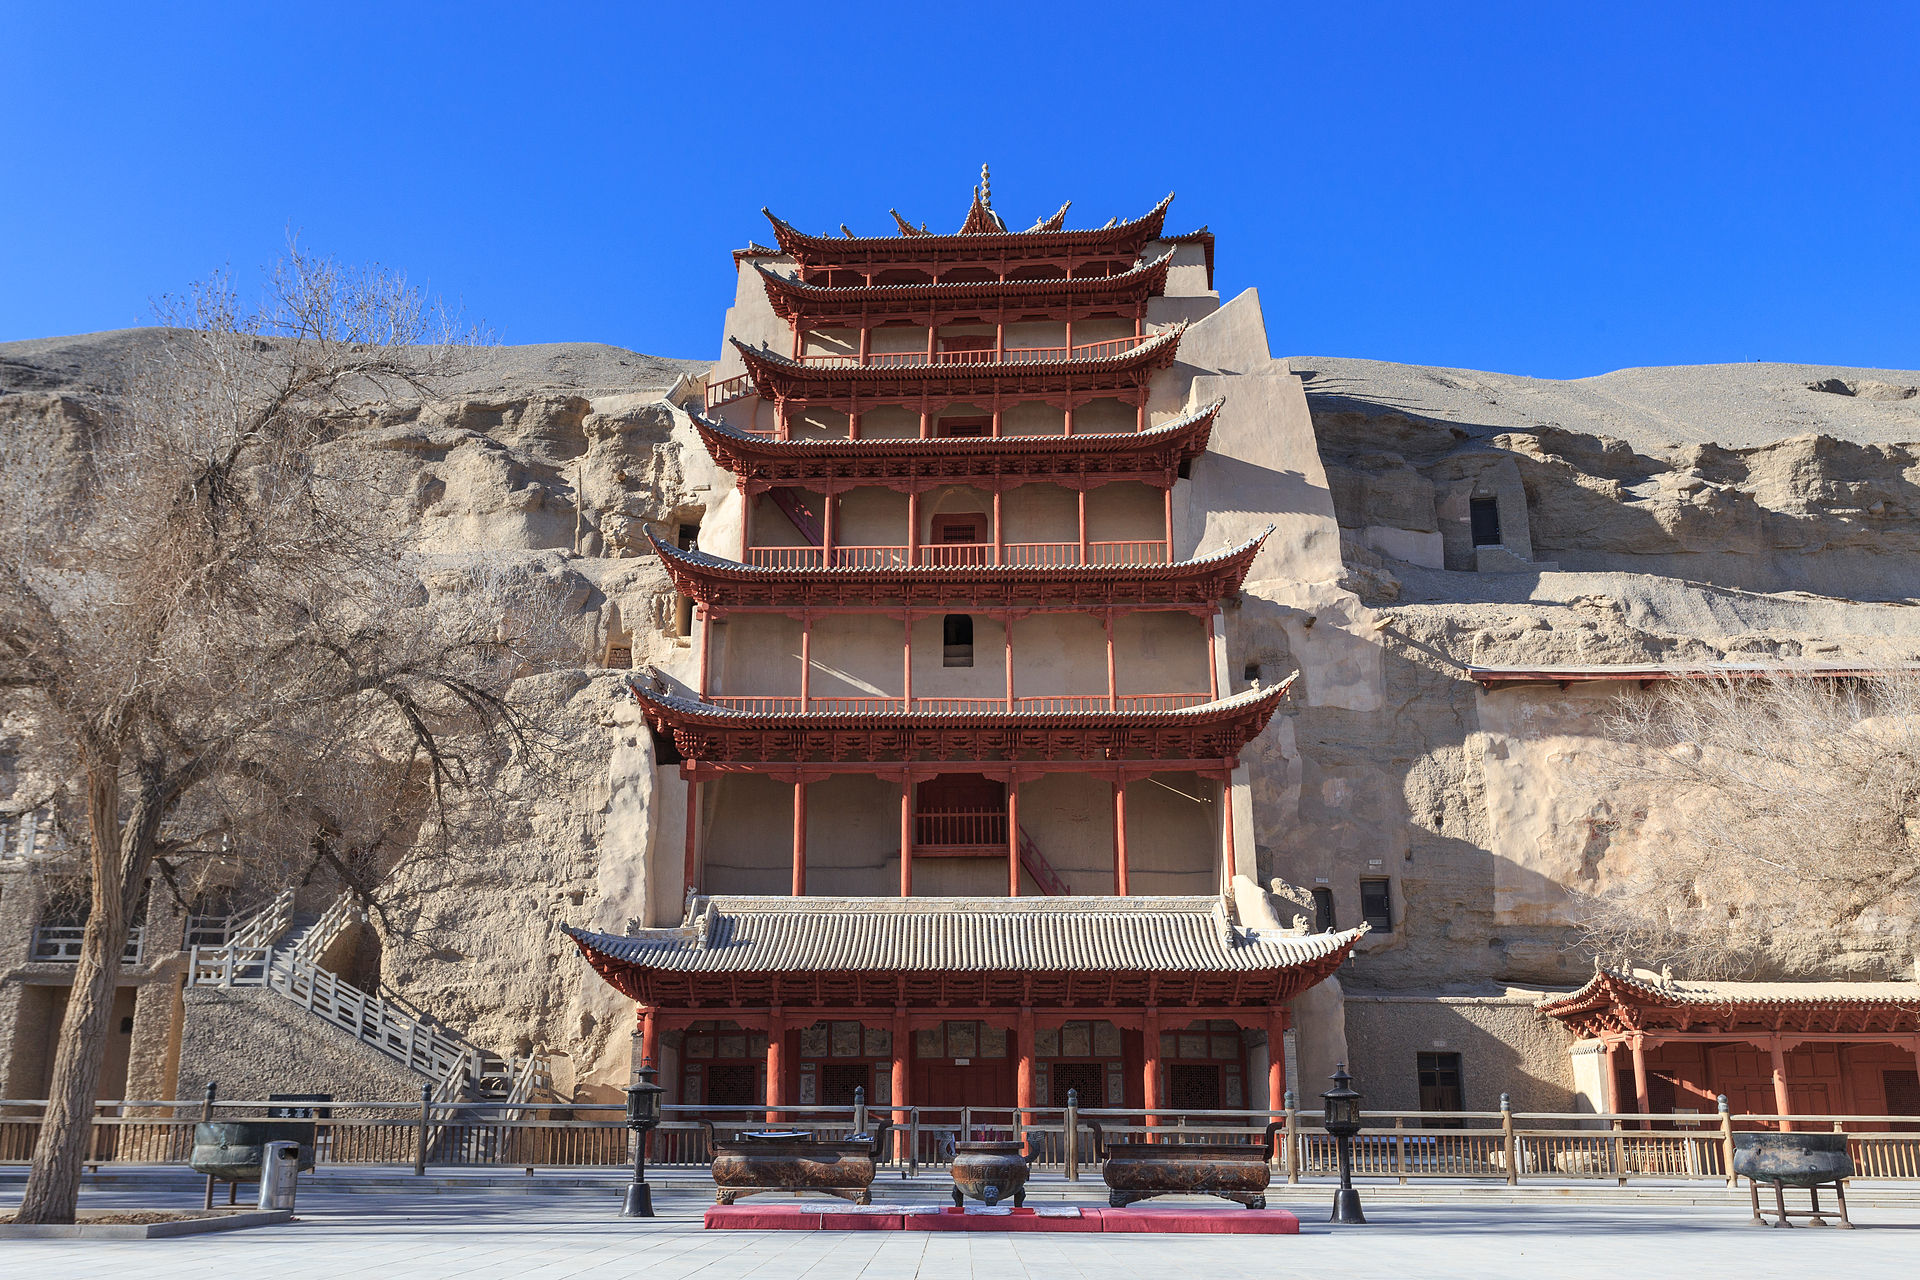 Image 1. 敦煌莫高窟 [One of the cave temples at Thousand Buddha Caves (Mogao Caves) on Tun-Huang Mountain, Ganzu Province, western China]. Photo by Zhangzhugang.